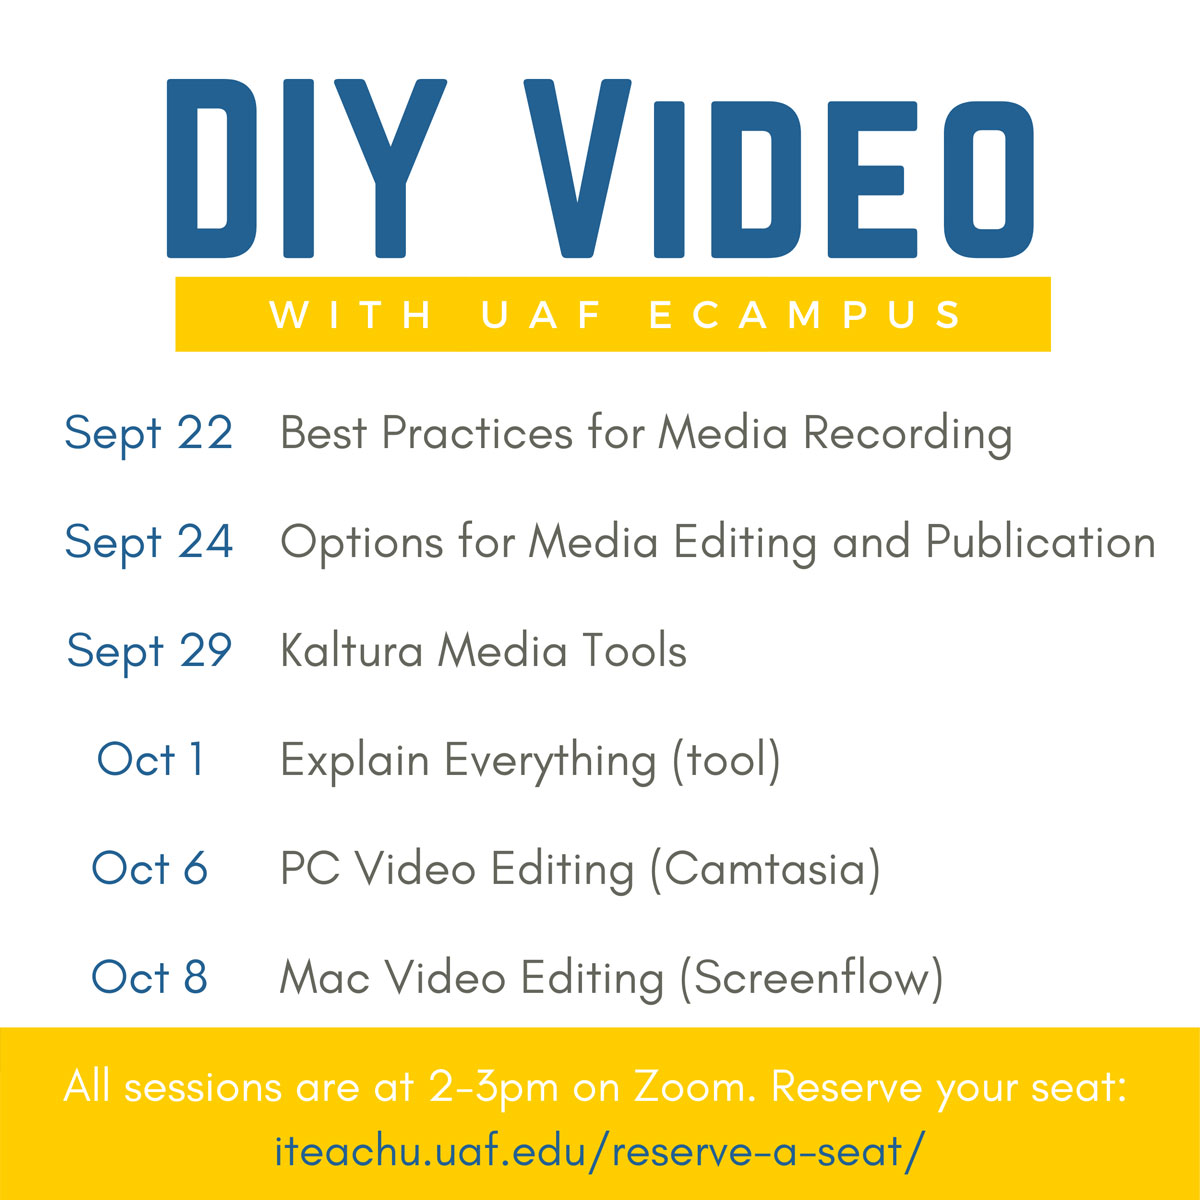 DIY Video series schedule: Sept 22 is Best Practices for Media Recording. Sept 24 is Options for Media Editing and Publication. Sept 29 is Kaltura Media Tools. Oct 1 is Explain Everything, the tool. Oct 6 is PC Video Editing (Camtasia). Oct 8 is Mac Video Editing (Screenflow). All sessions are 2-3 p.m. on Zoom.